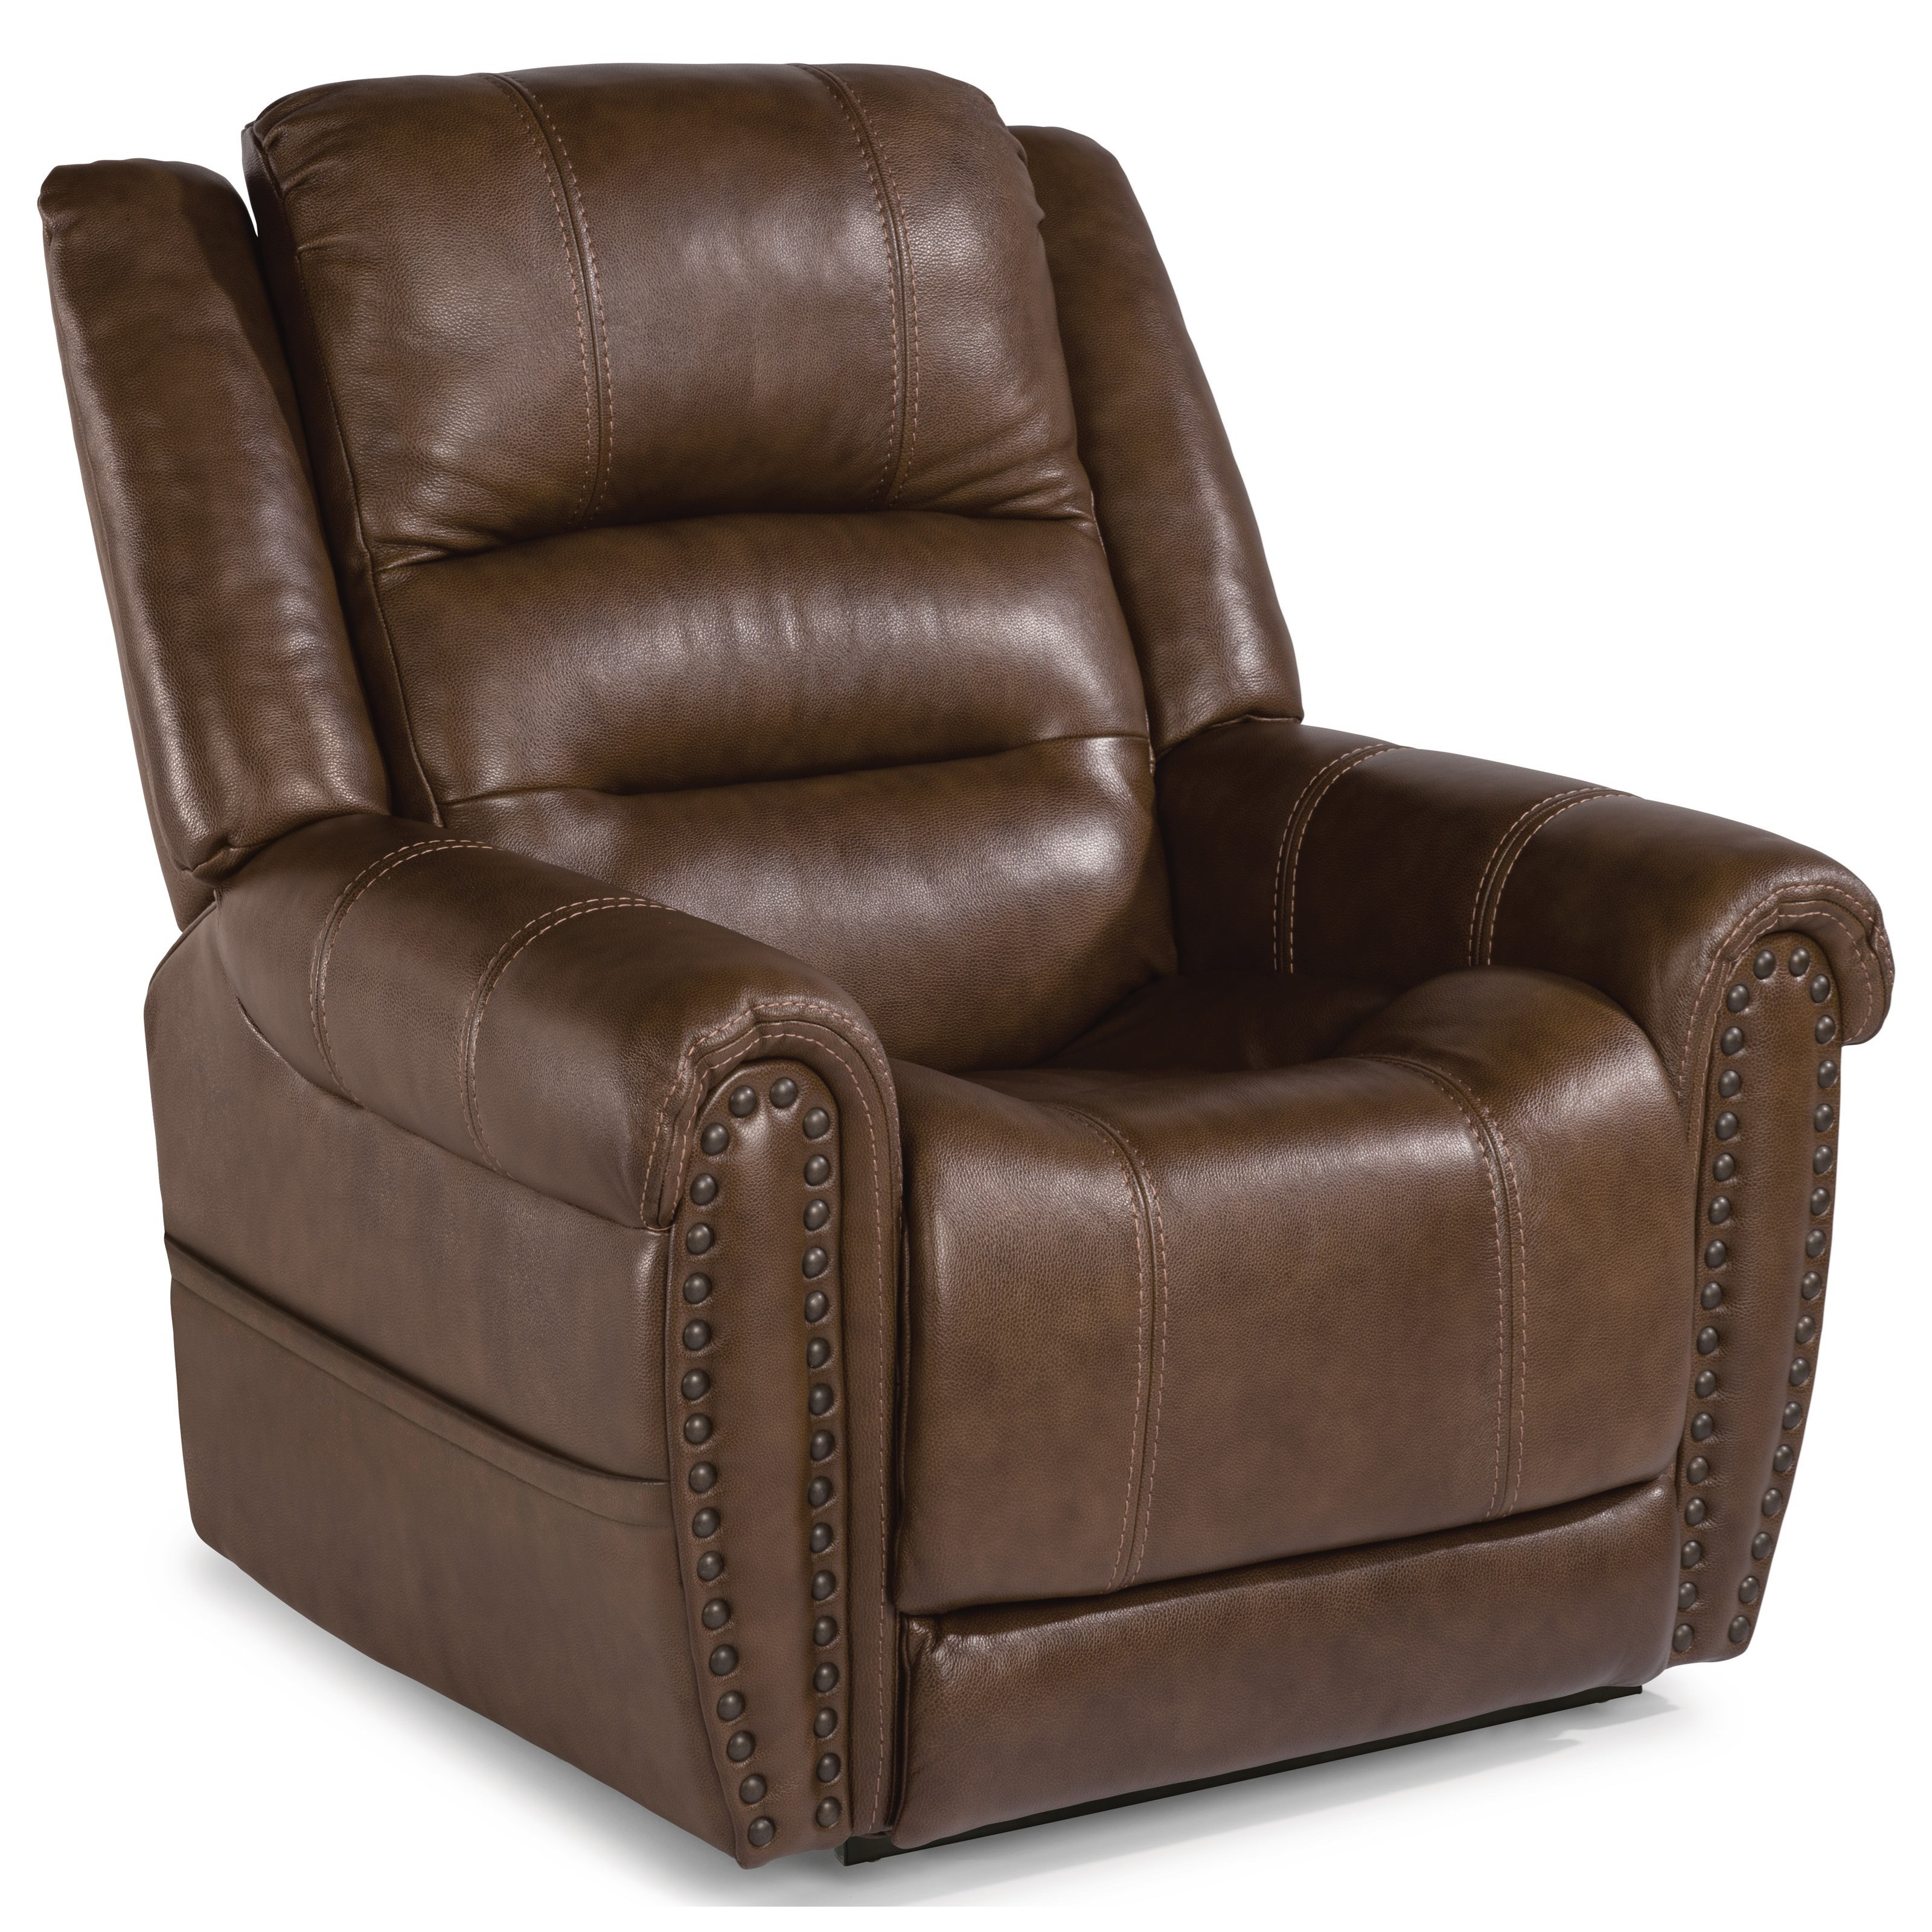 Power Lift Recliner with Power Headrest and Lumbar Support